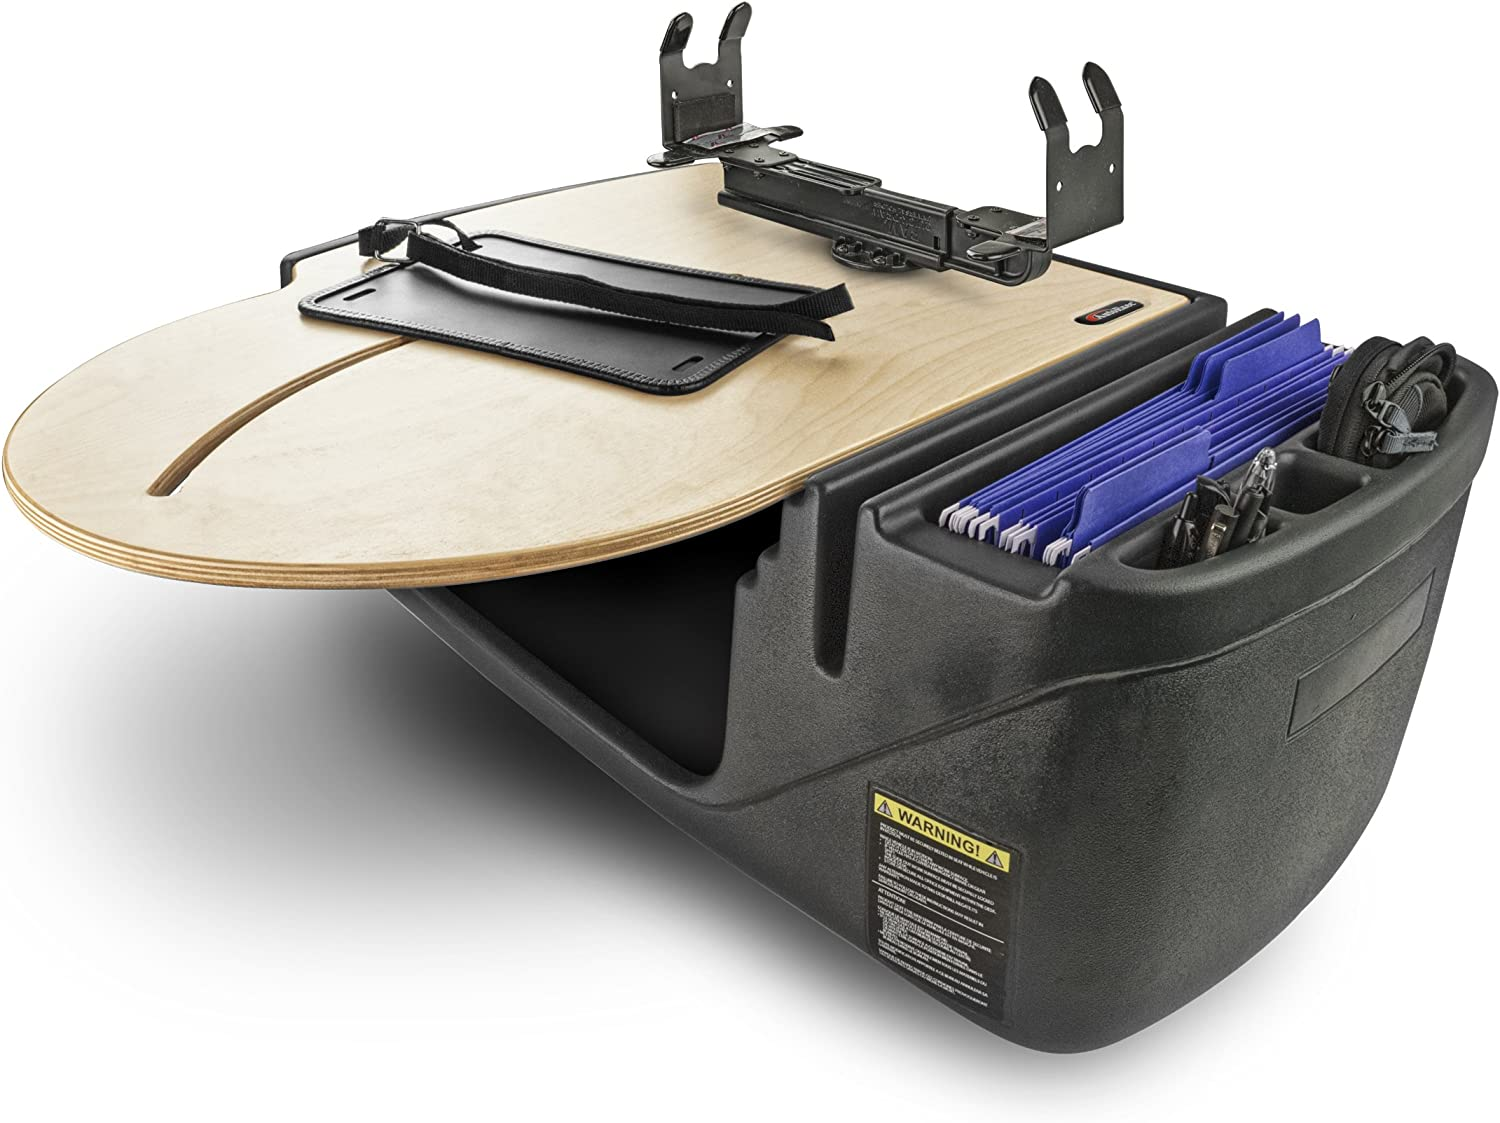 AutoExec AUE80022 Milk Crate Vehicle and Mobile Office Work Station with Apron Power Inverter and Phone Mount Laptop Tray